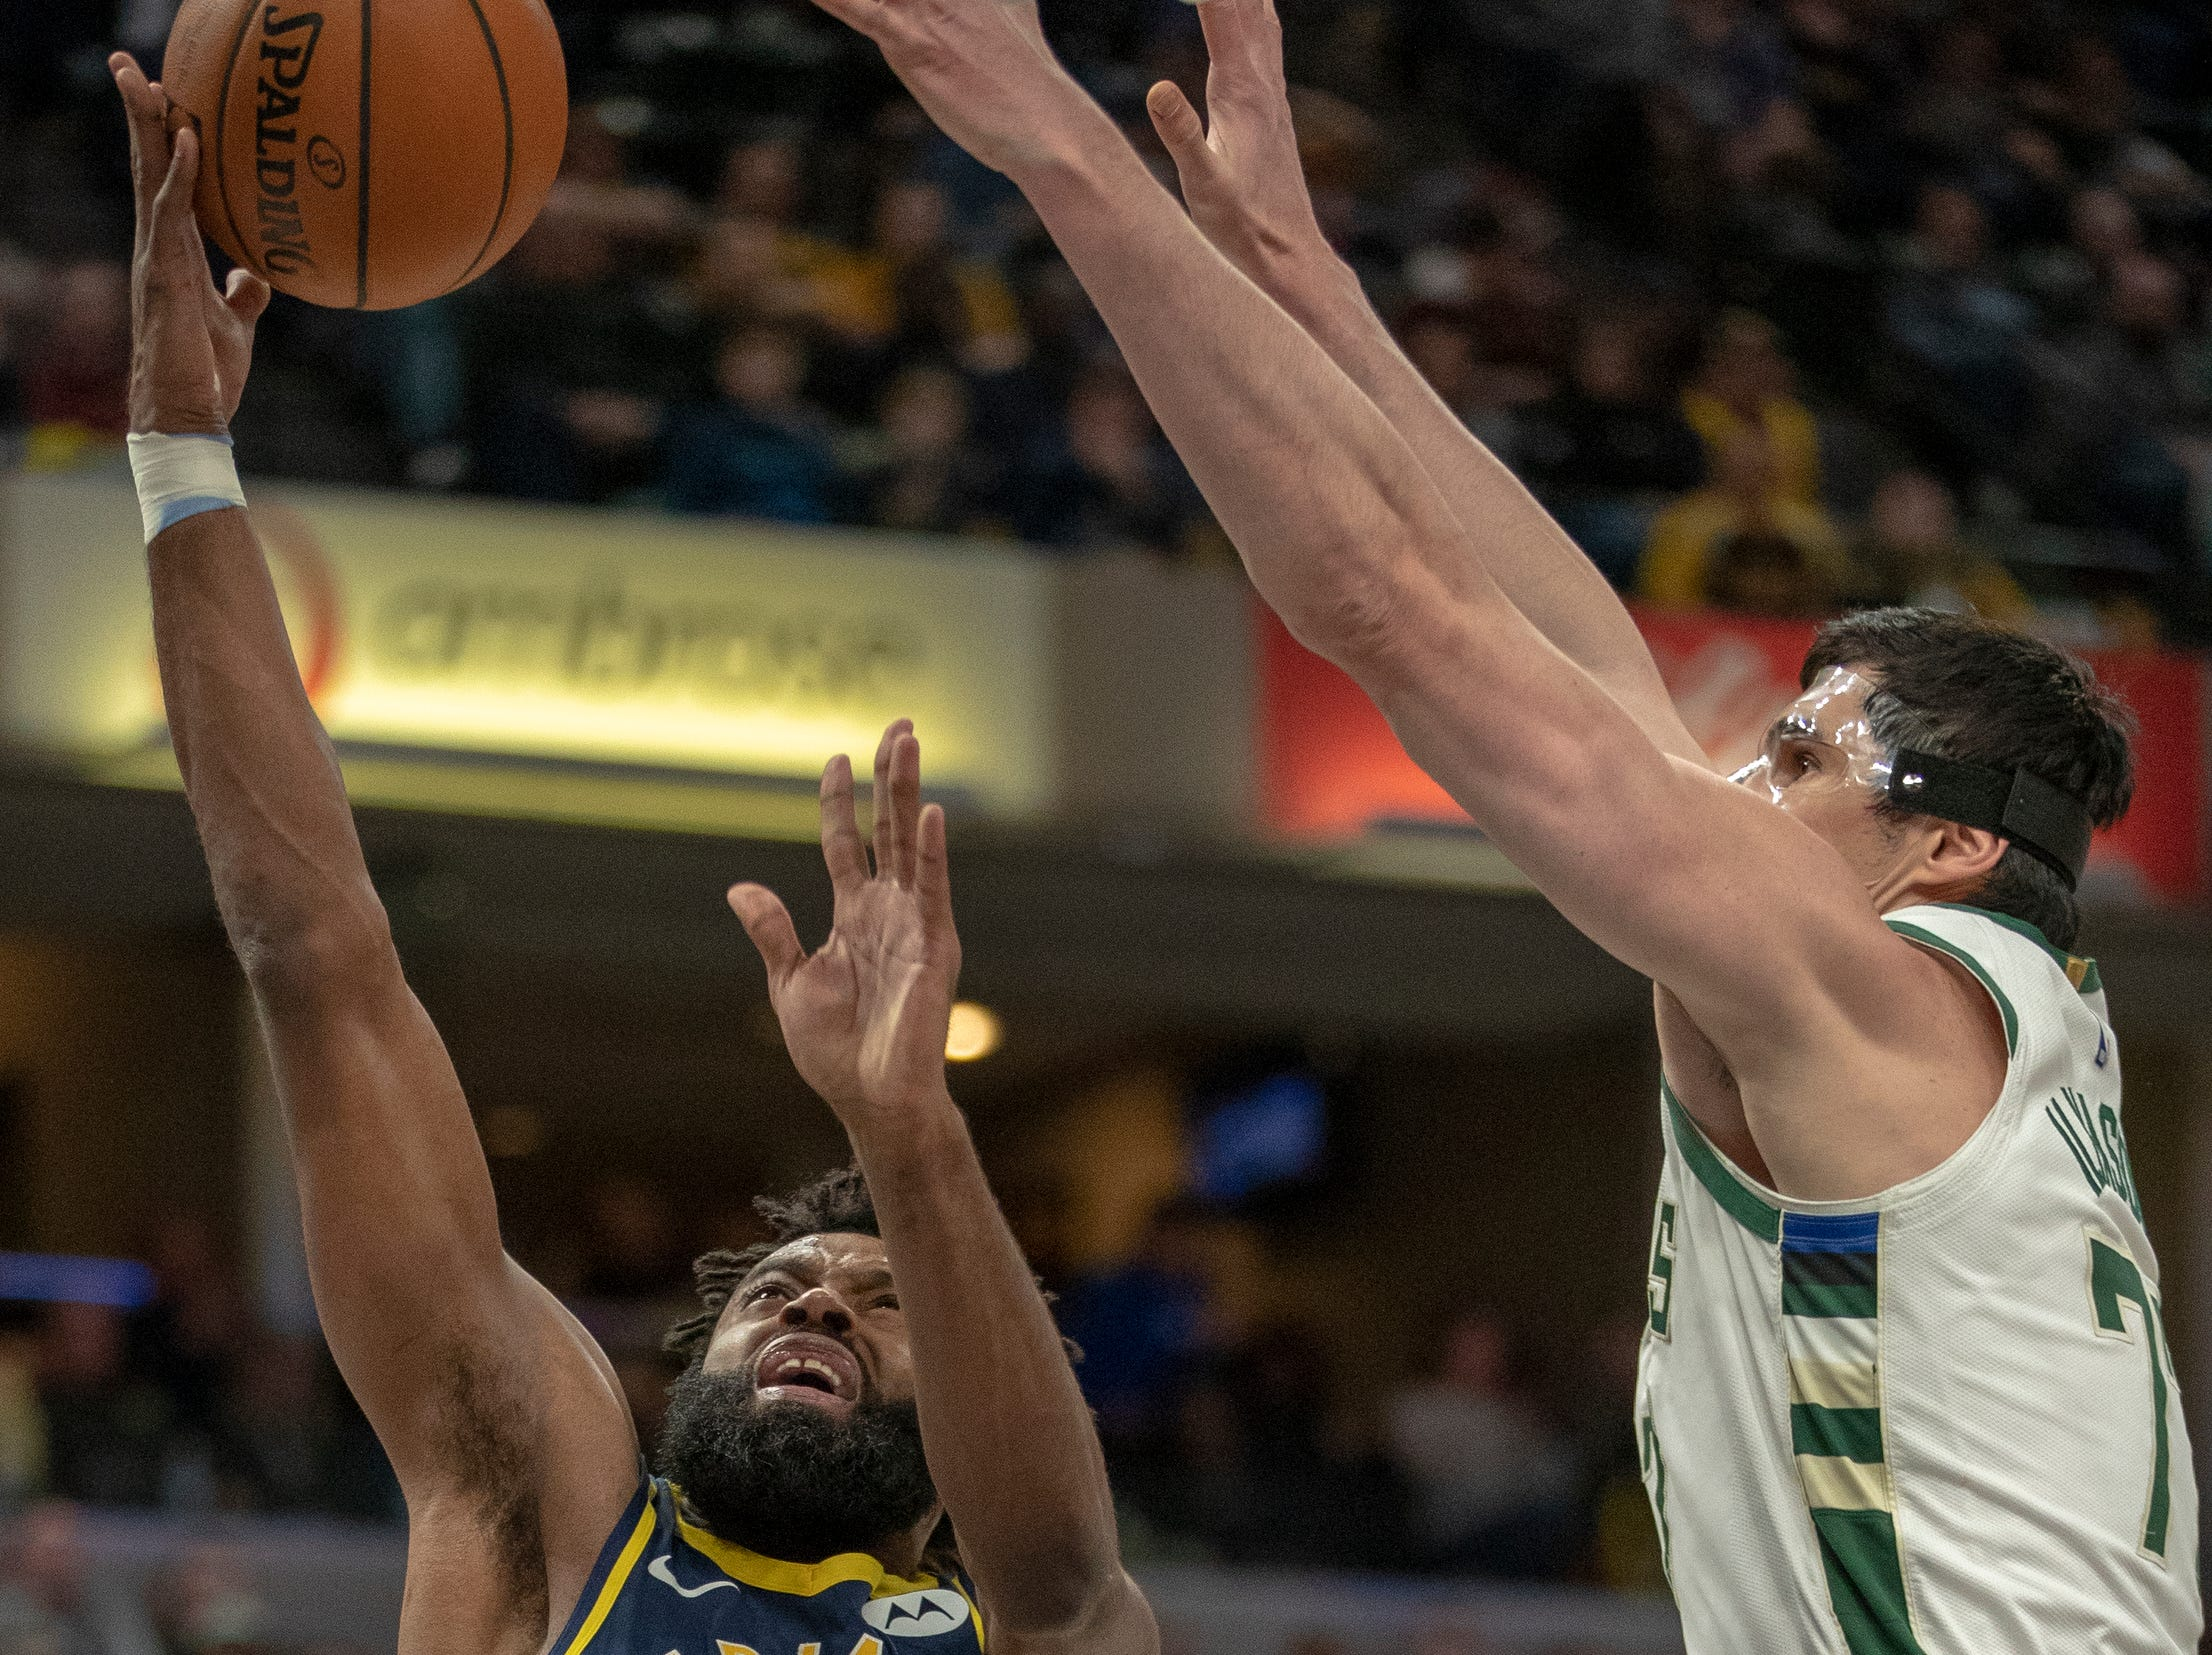 Tyreke Evans of the Indiana Pacers puts up a shot as he is defended by Ersan Ilyasova of the Milwaukee Bucks, Bankers Life Fieldhouse, Indianapolis, Wednesday, Feb. 13, 2019. Milwaukee won 106-97.